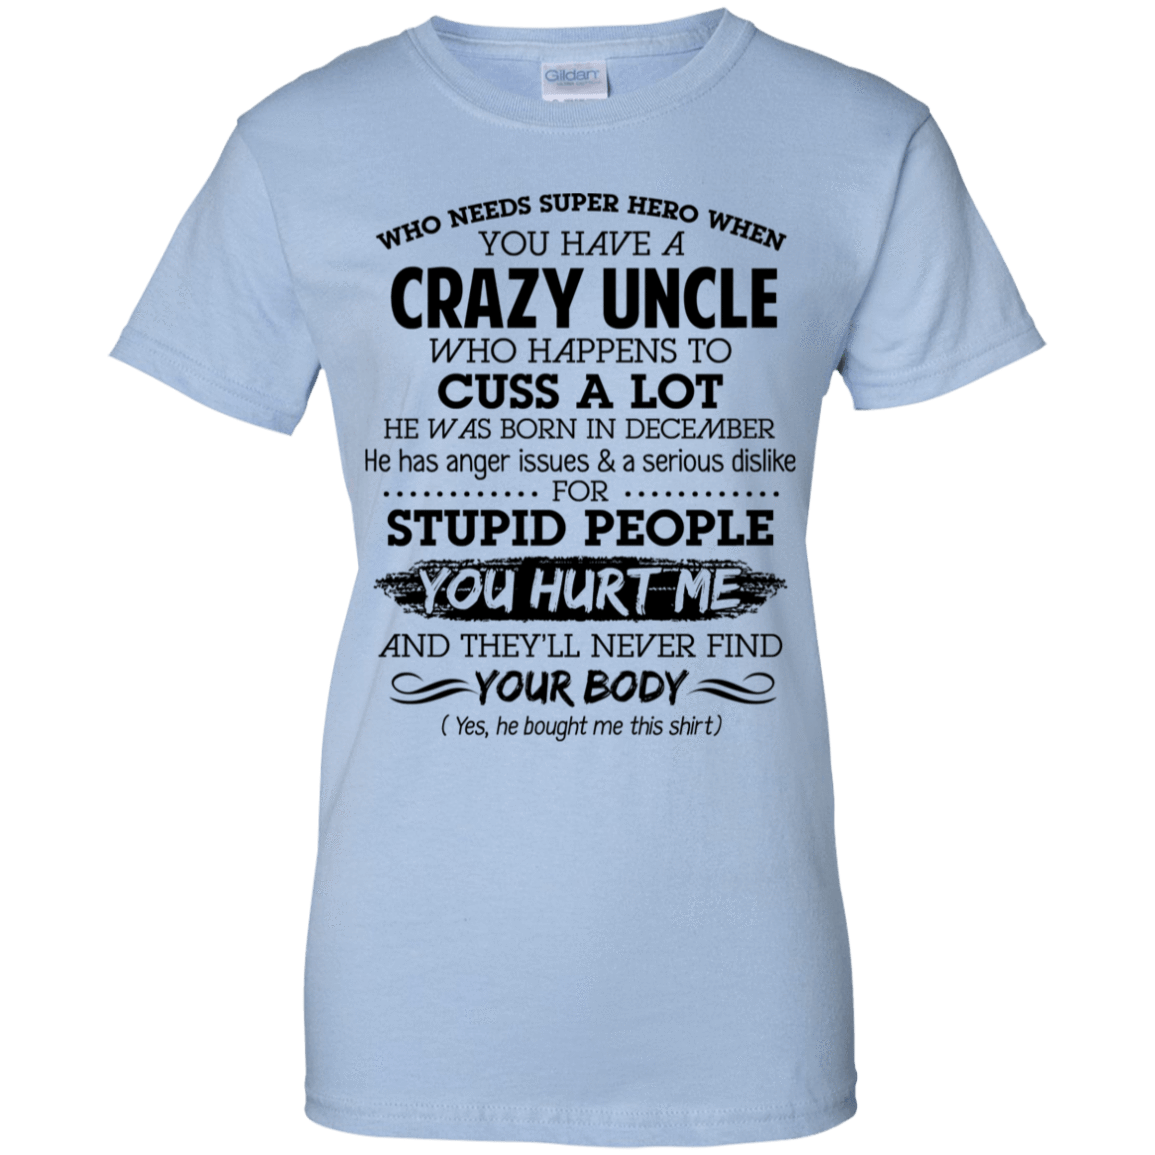 I Have A Crazy Uncle He Was Born In December Birthday Gift 939-9257-73920359-44716 - Tee Ript